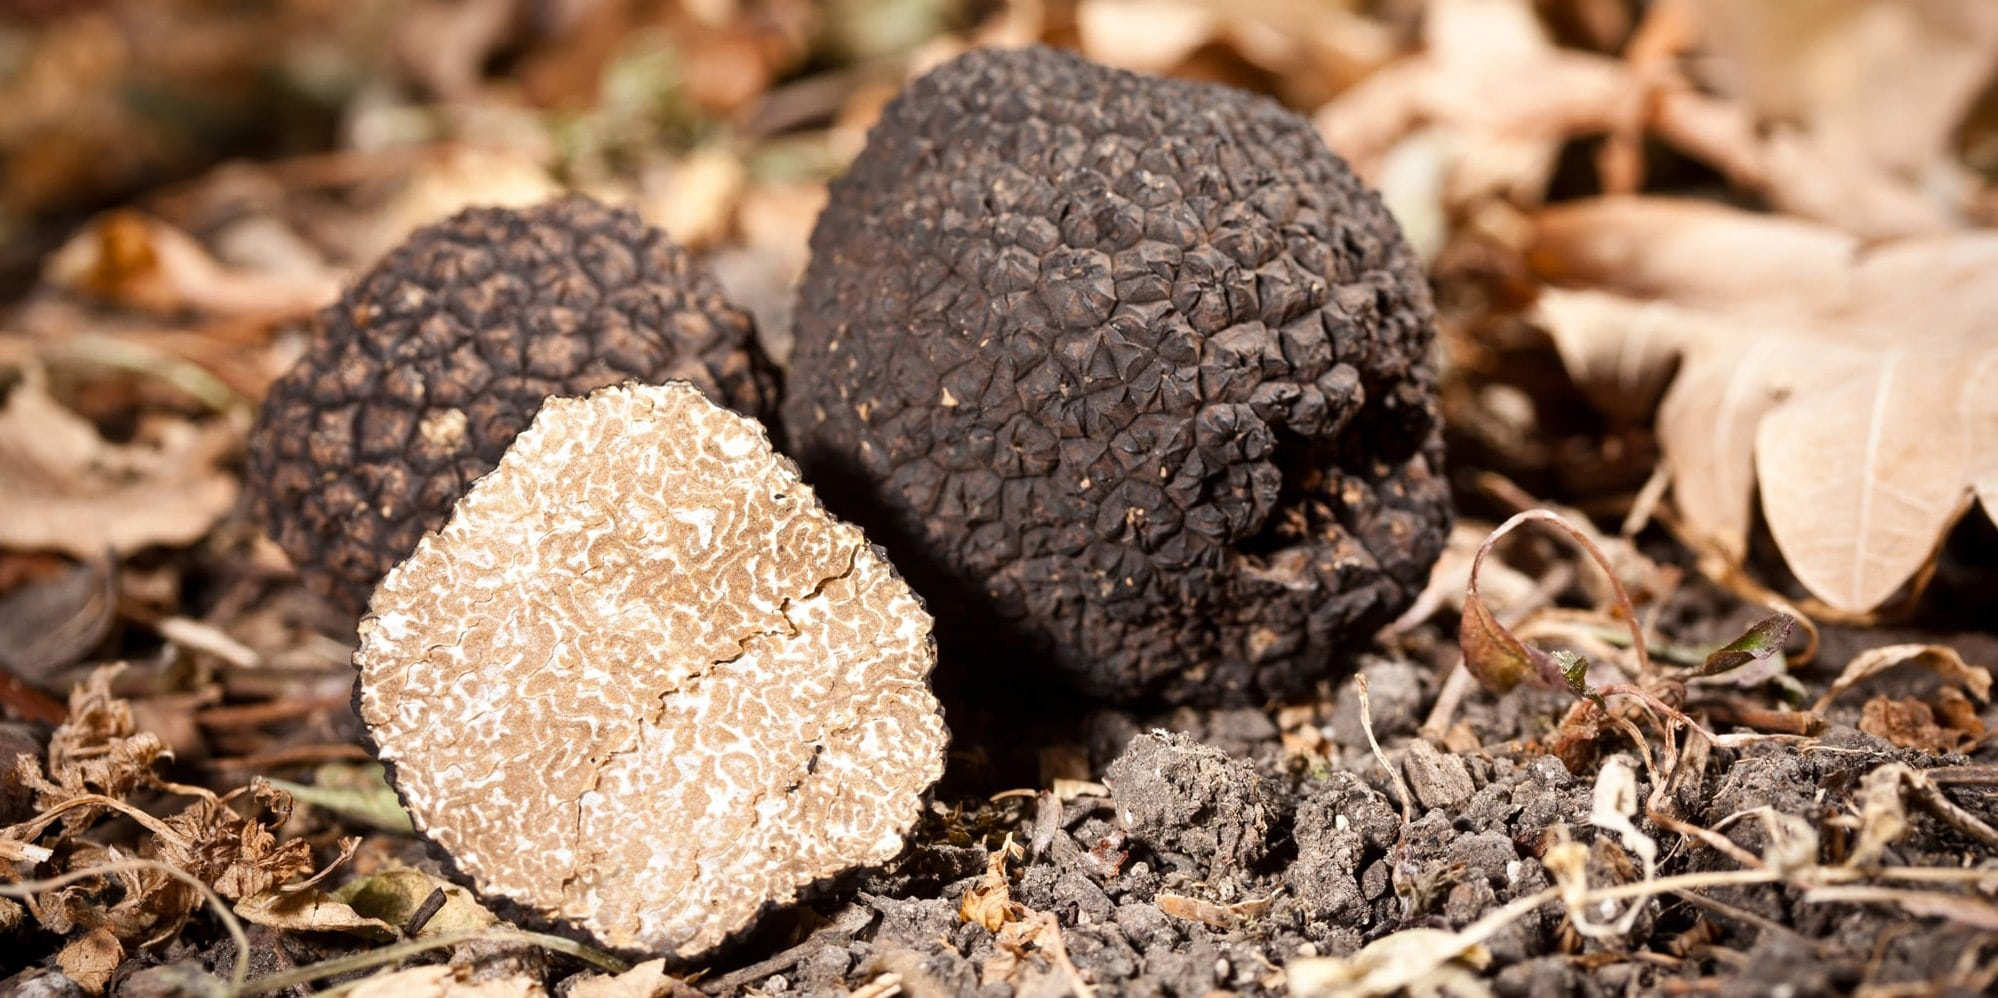 Truffles hunting in Tuscany